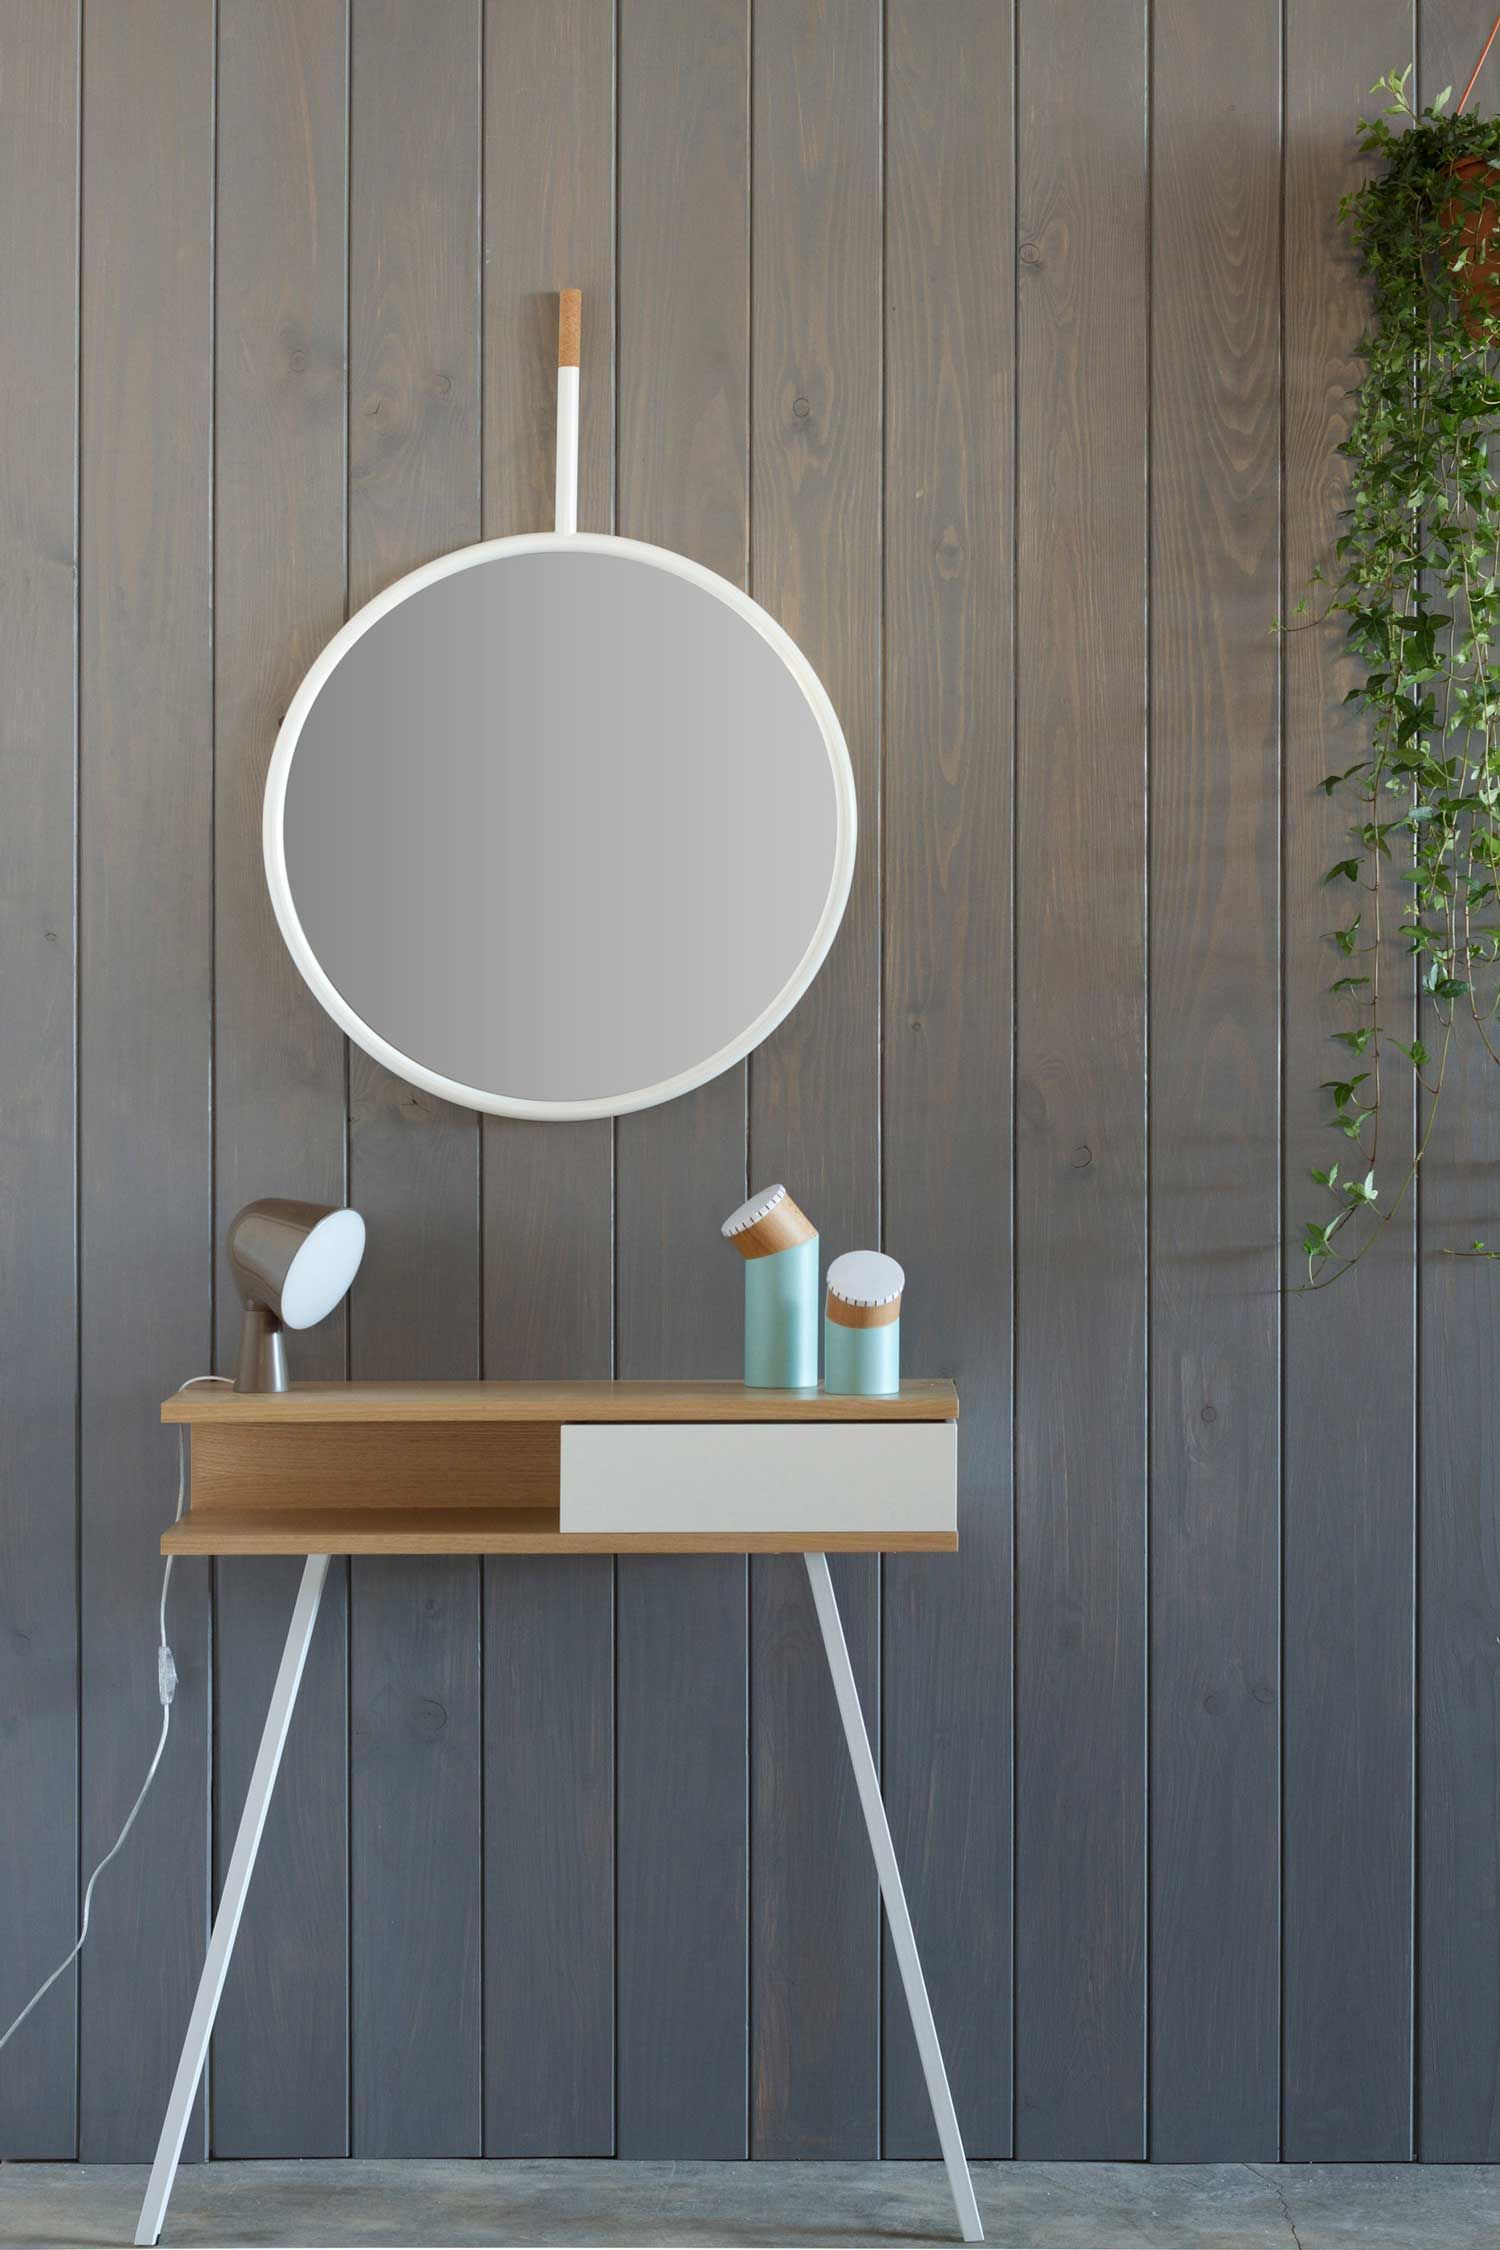 New Collection By La Mamba For Omelette Ed Hanging Mirrors  # Muebles Gautier Espana